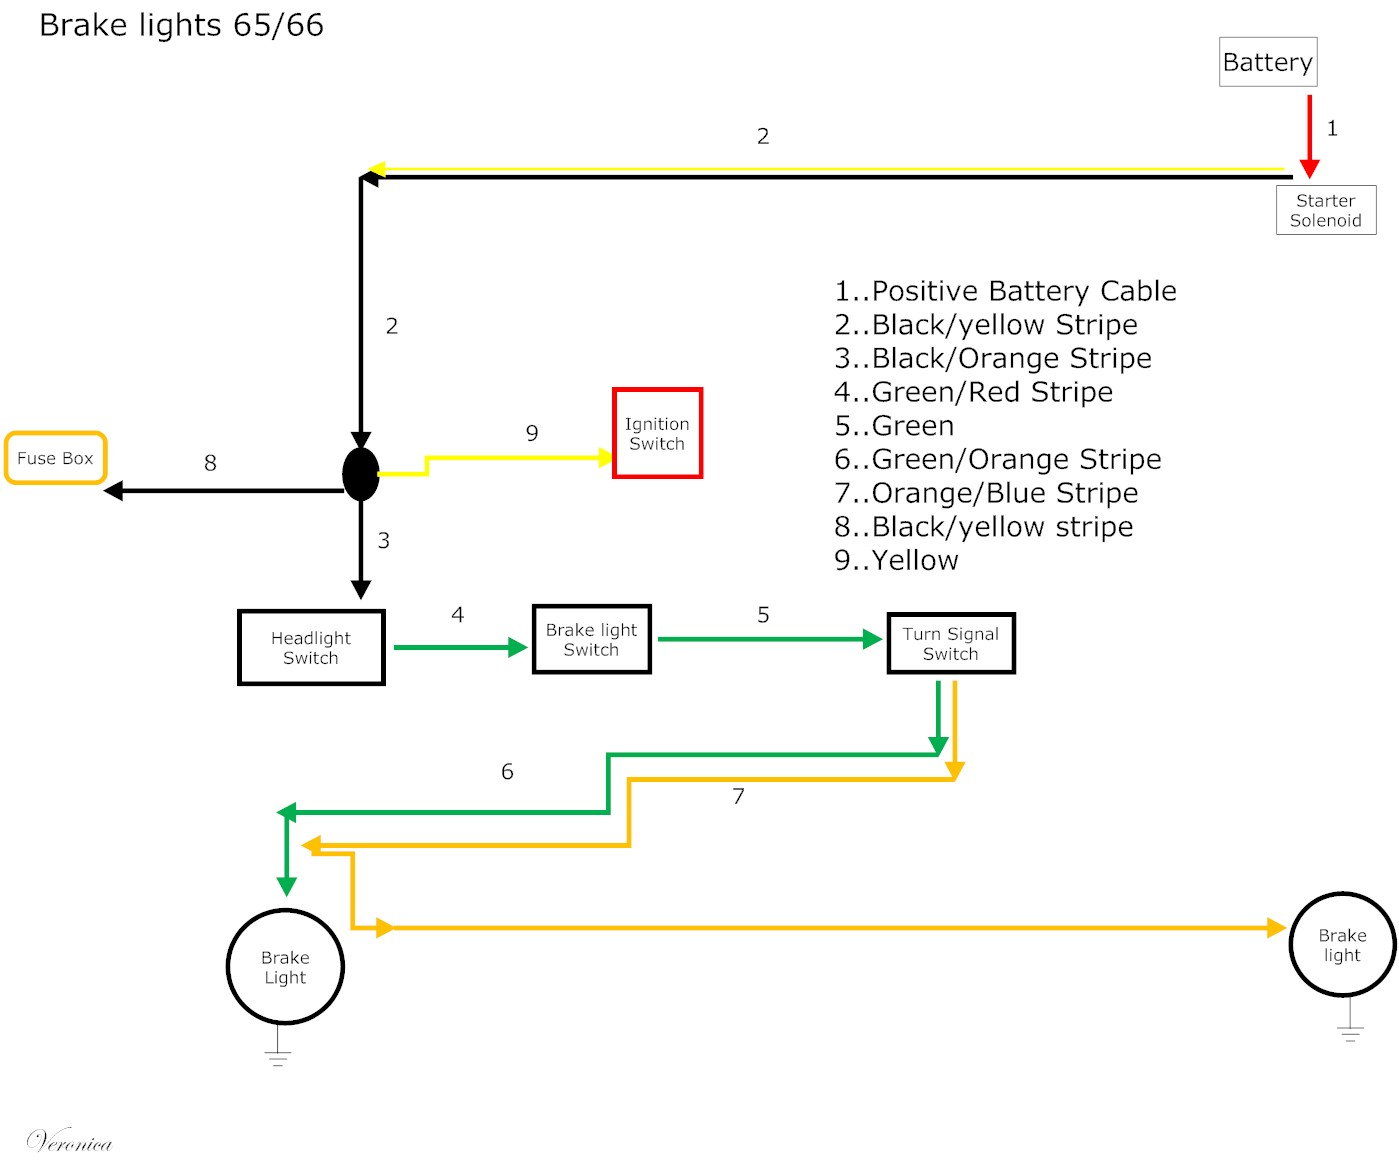 1986 Mustang Headlight Switch Wiring Diagram Great Engine To A 38 Chevy Wire 86 Svo Diagrams Schematic Rh Pelzmoden Mueller De